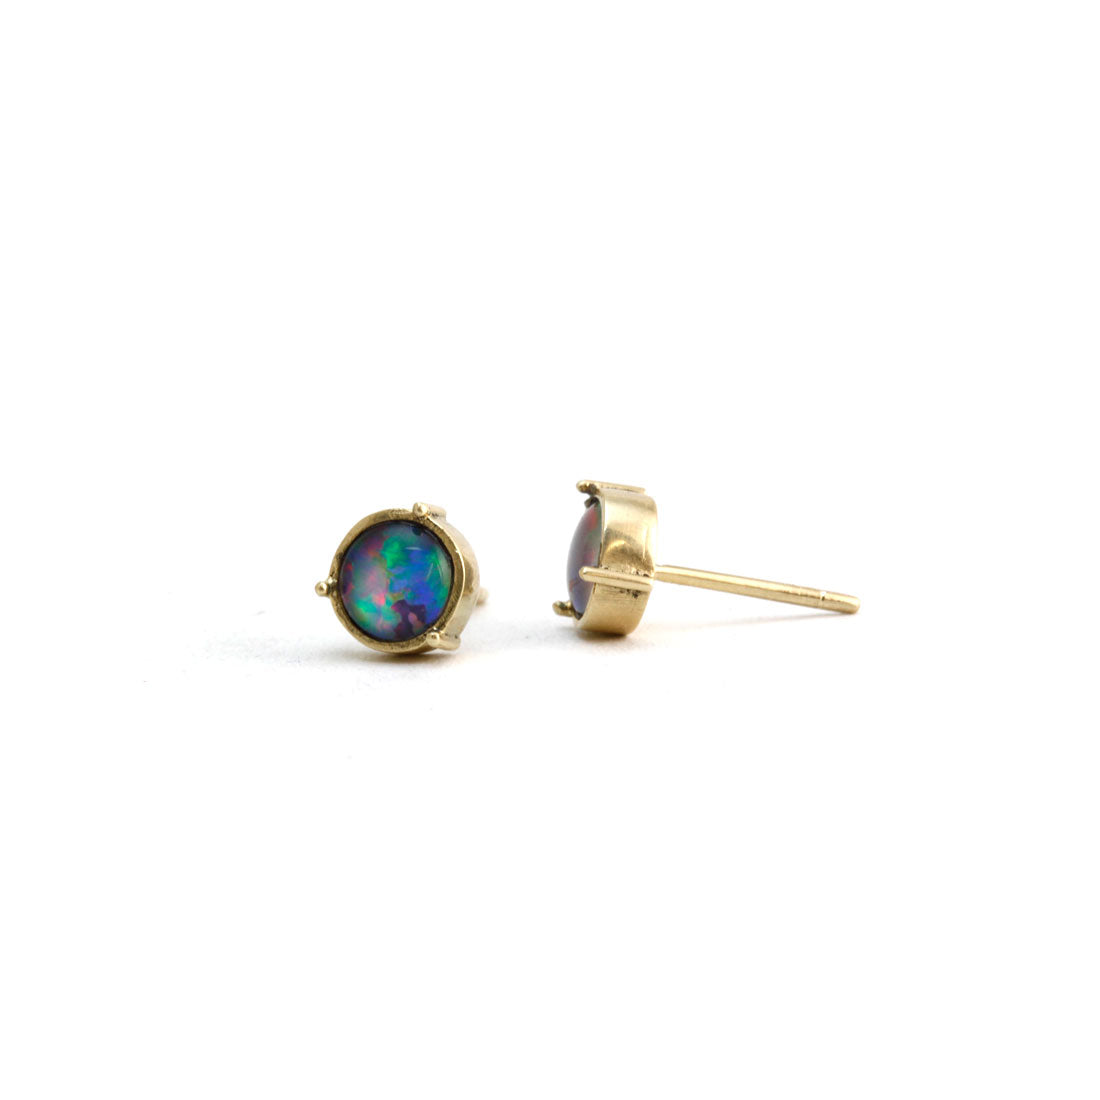 opal stud earrings in 9ct gold, Custom Bespoke Handmade.